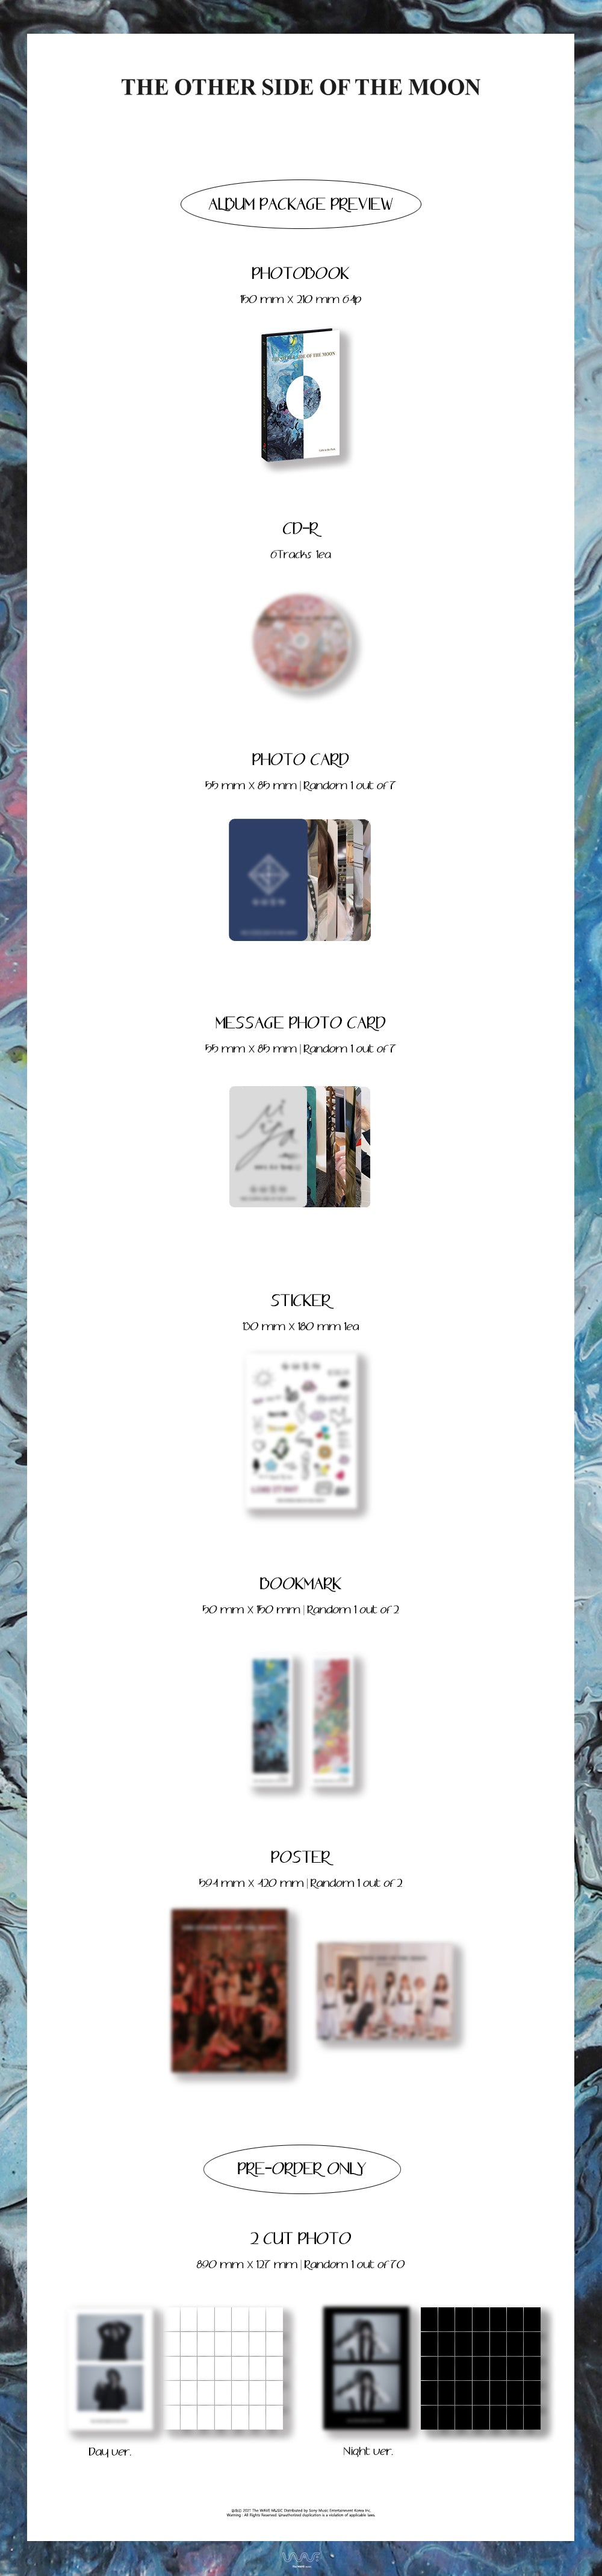 PREORDER - Girls in the Park(GWSN) - 5TH MINI ALBUM THE OTHER SIDE OF THE MOON Infographic